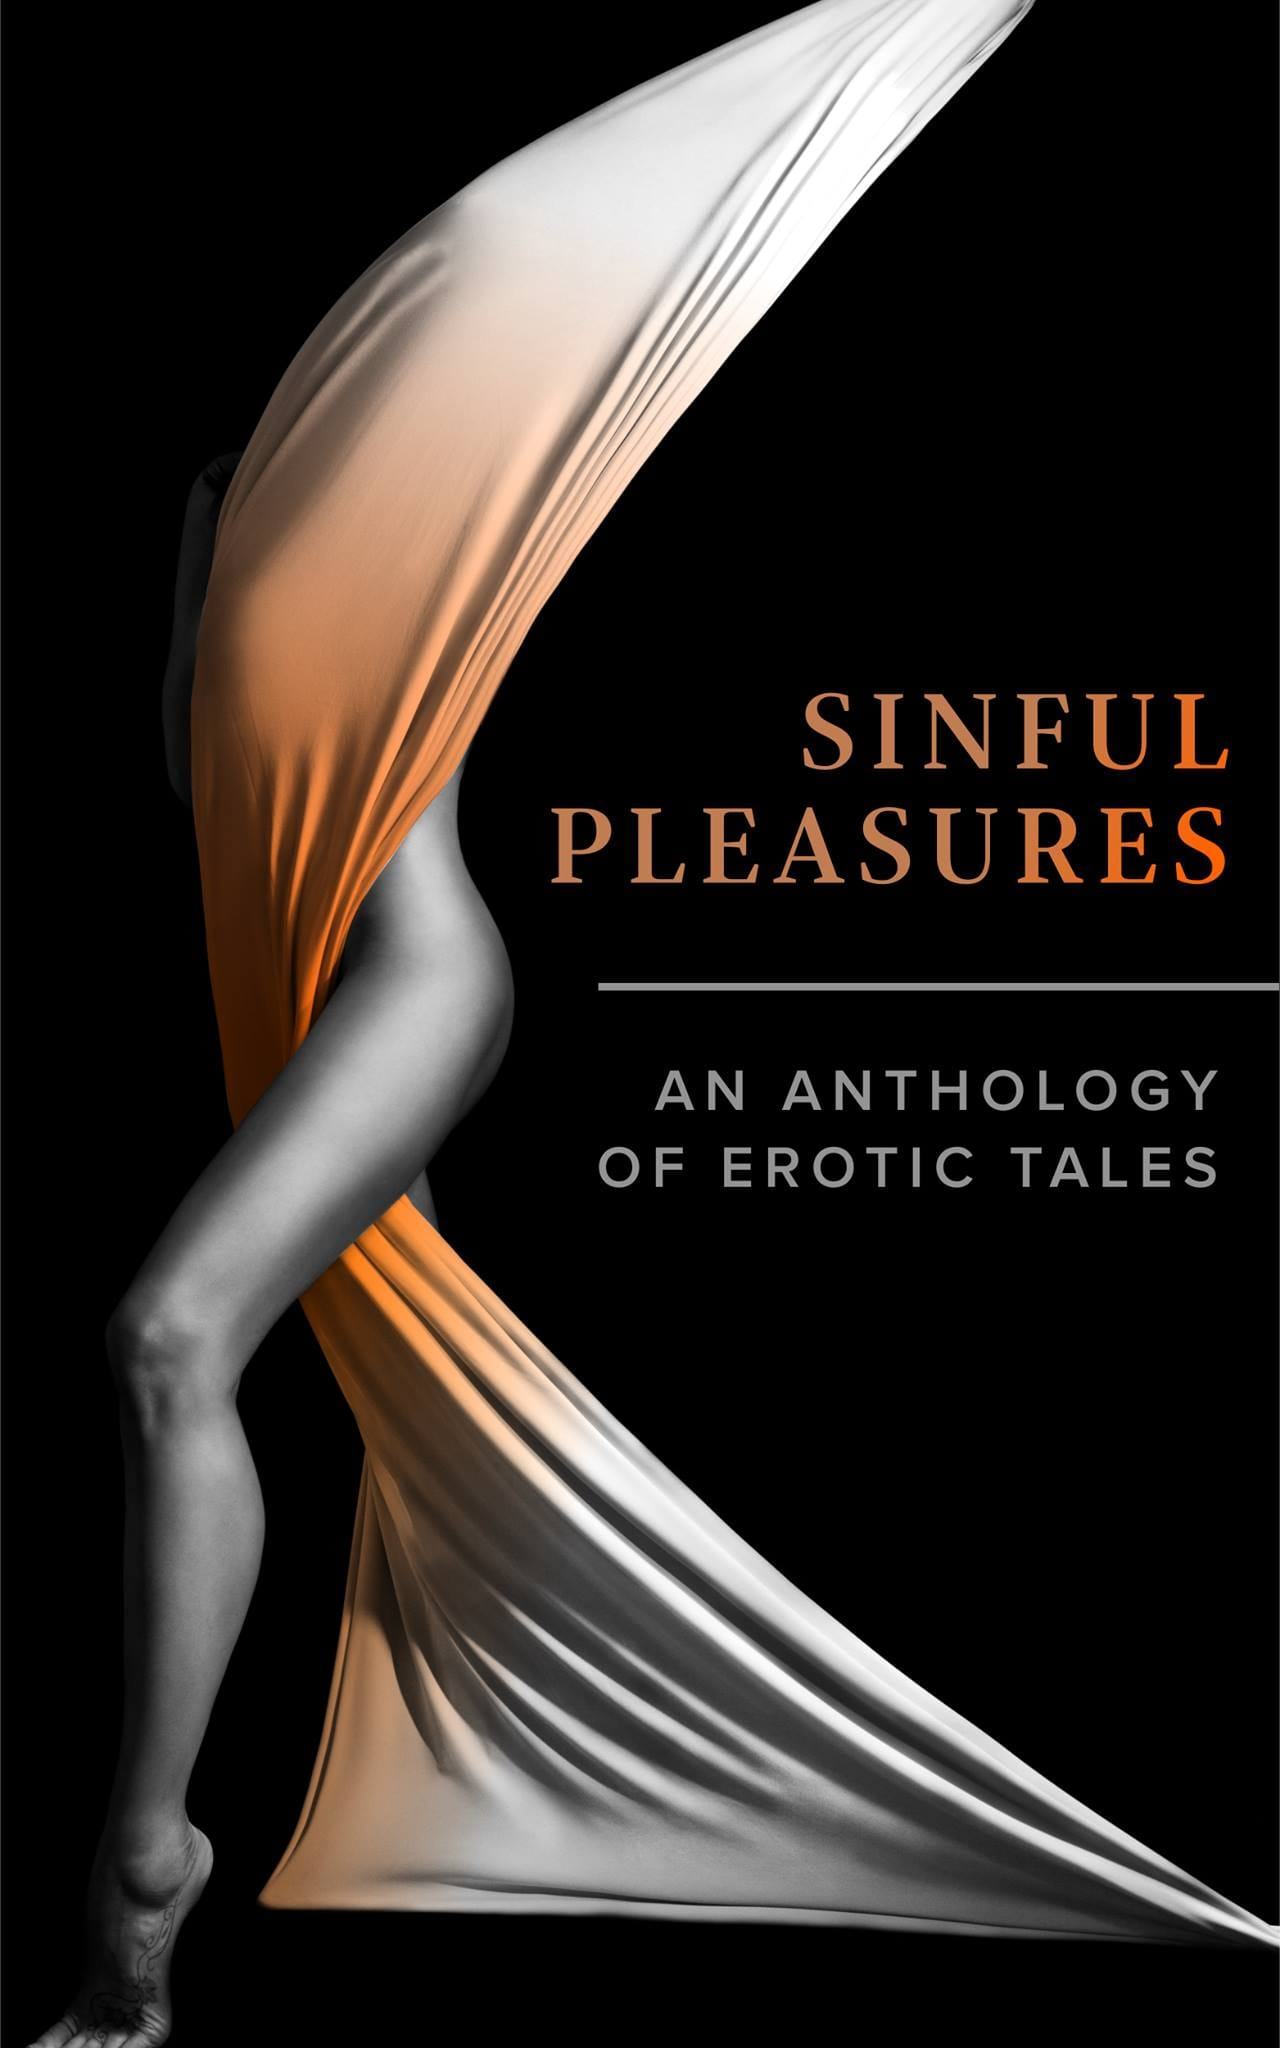 Sinful Pleasures